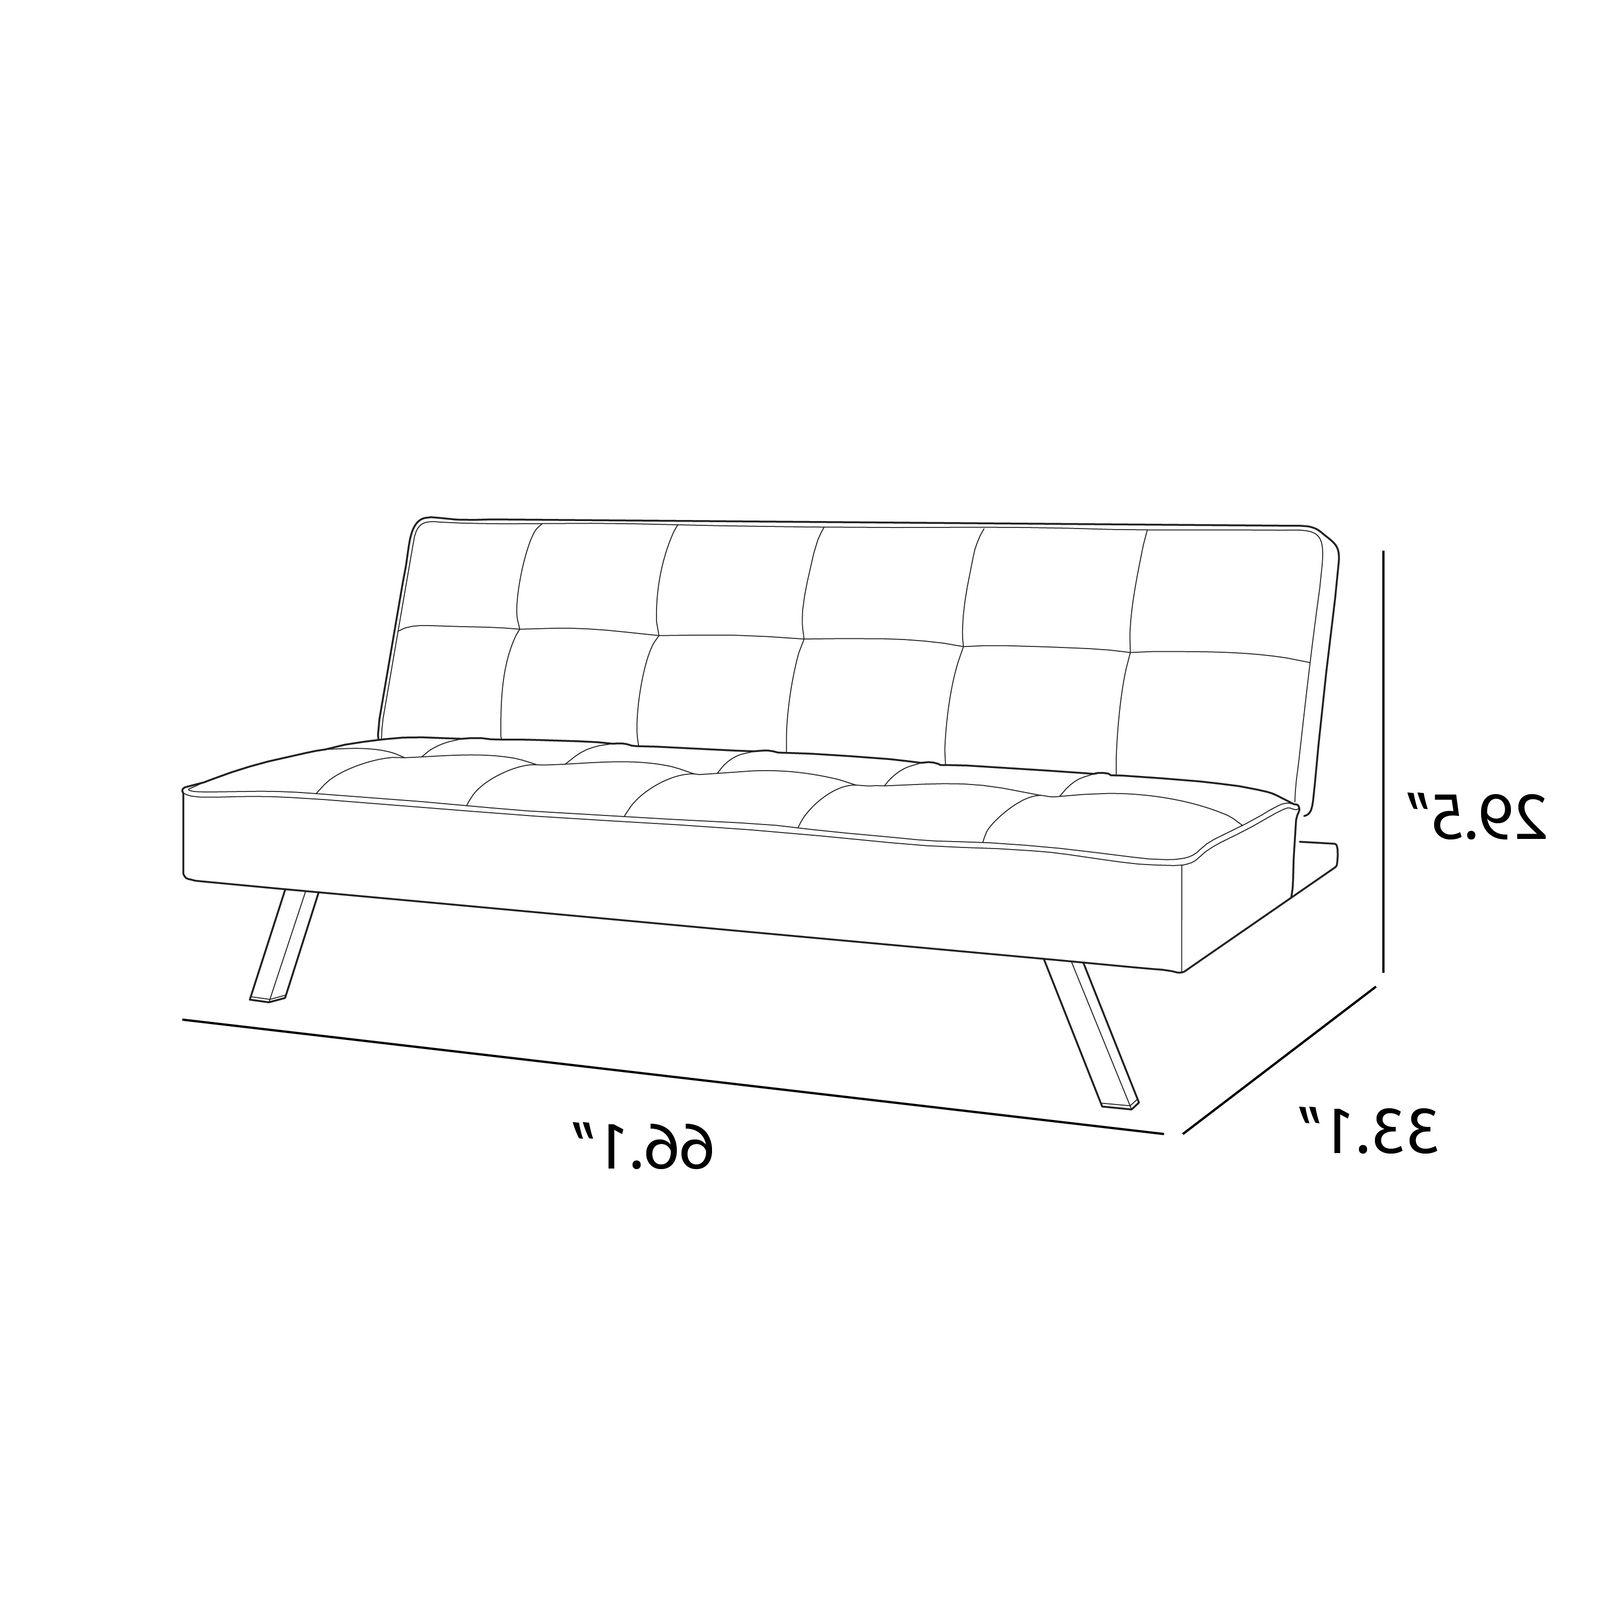 CONVERTIBLE Futon Couch Loveseat Chaises Furniture